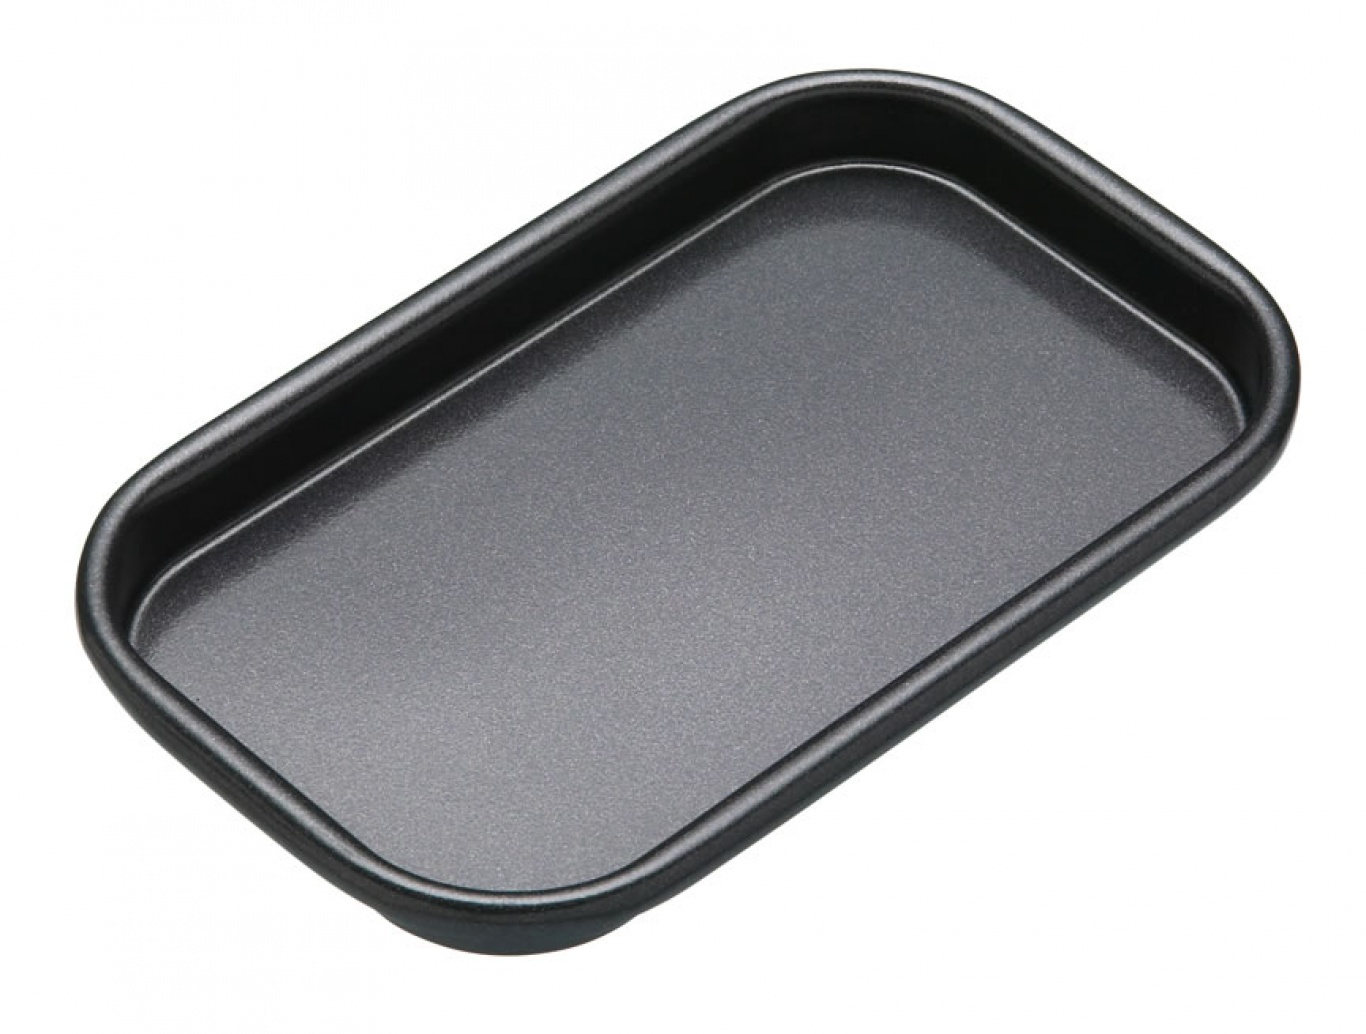 Image of Non Stick Baking Tray 16.5cm x 10cm x 2cm